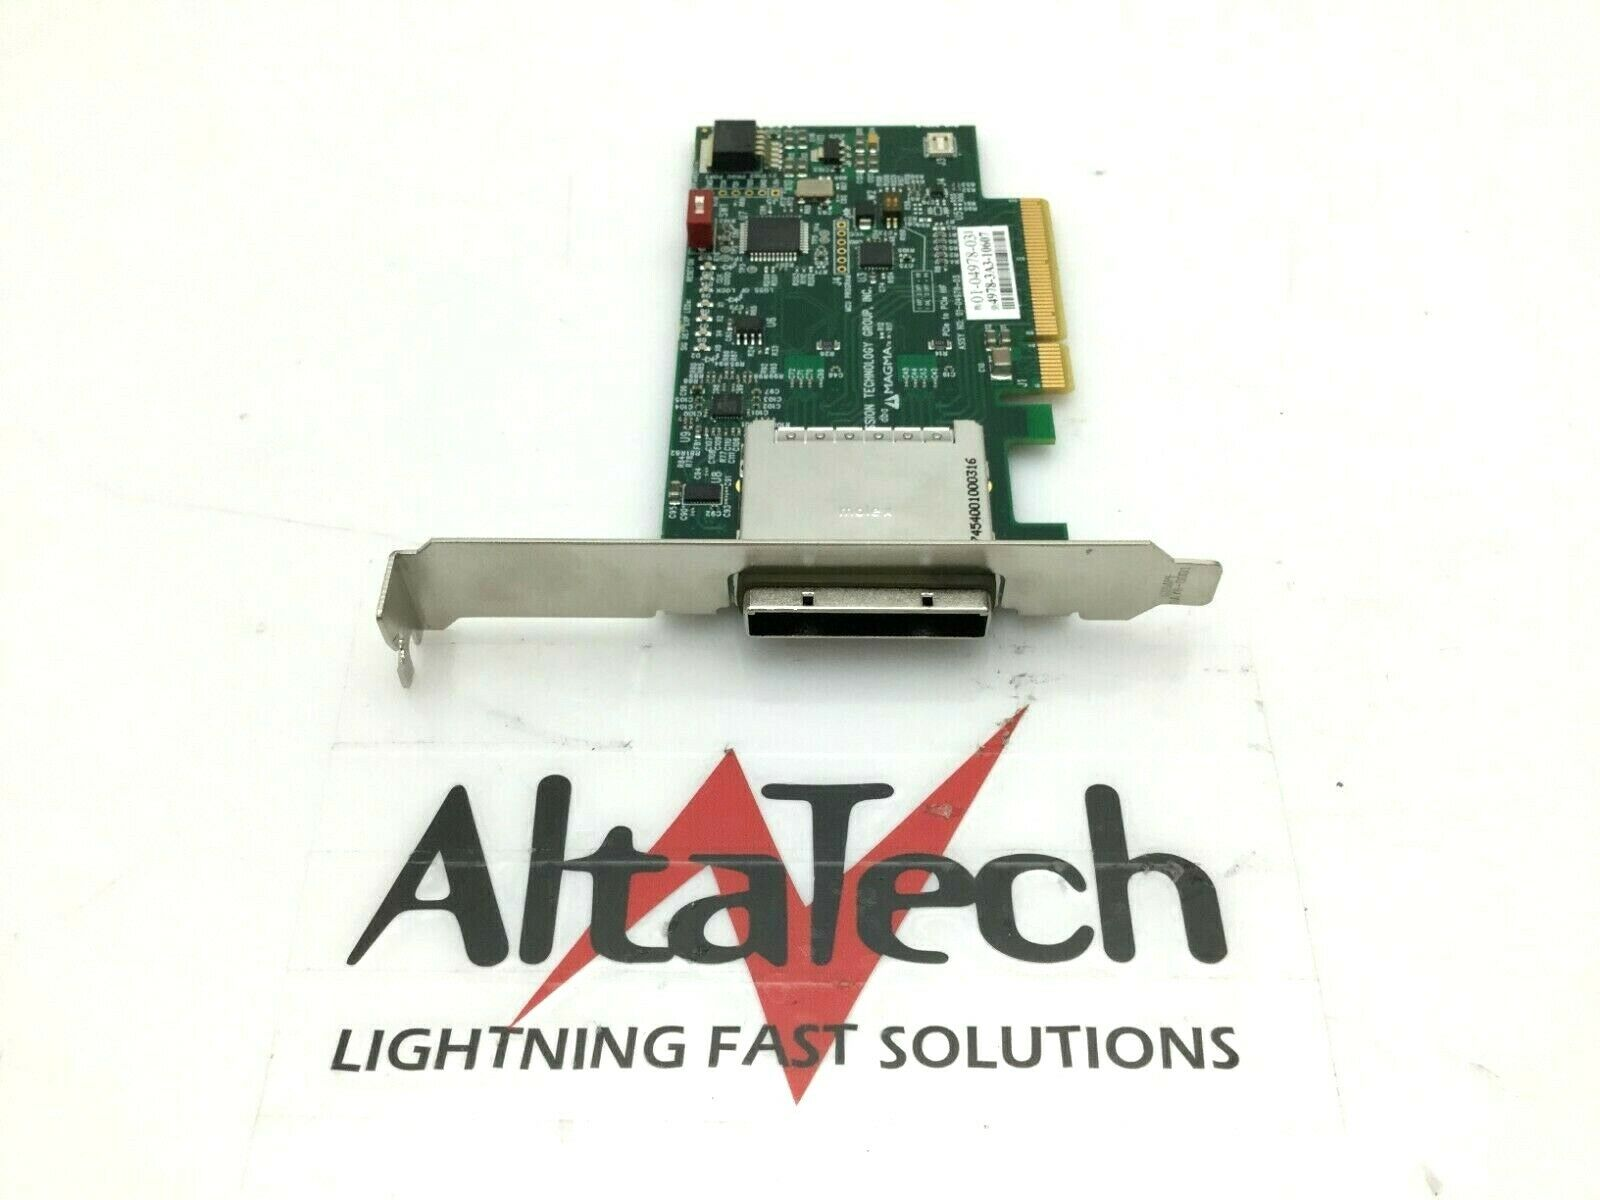 MAGMA Full Height PCI-e x8 Gen 2 SCSI Expansion Link Card 03-04978-03 - Tested